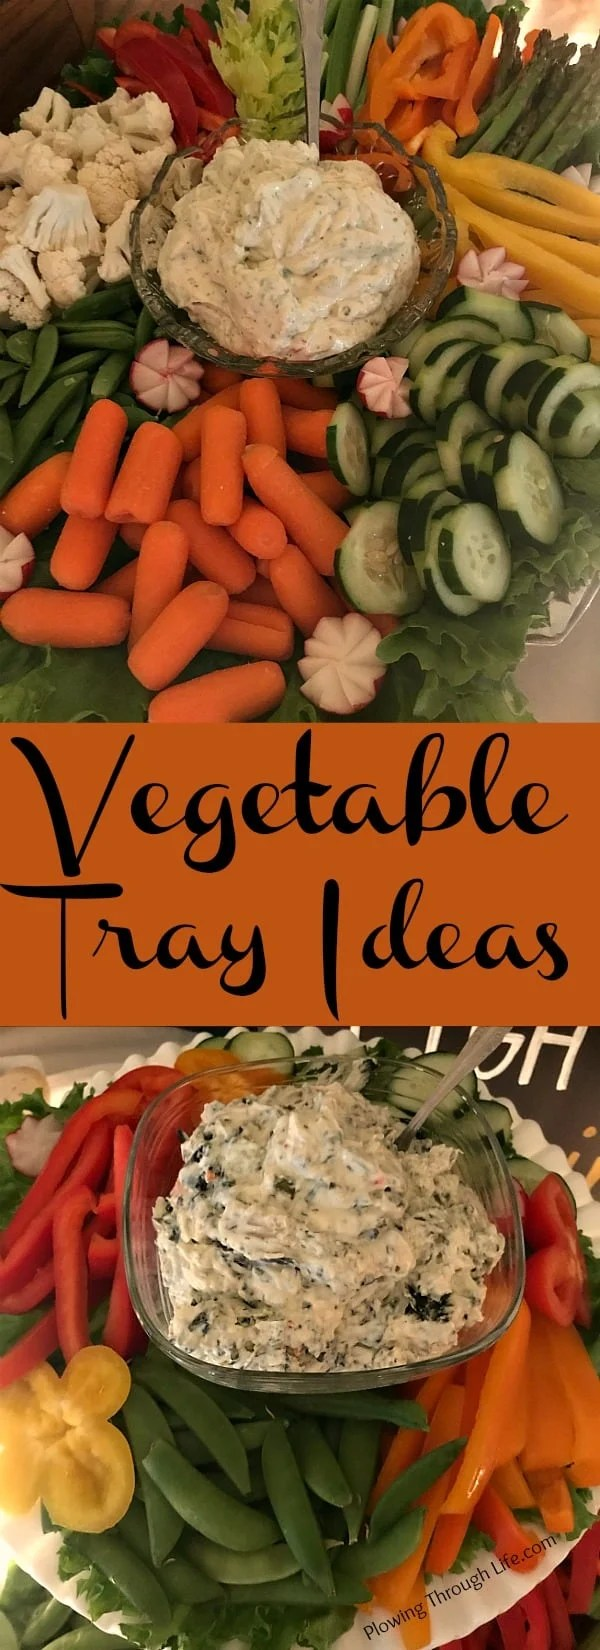 Vegetable trays or vegetable platters are great for potlucks, cookouts or parties of any kind. Here are some tips and ideas to make a simple or a fancy vegetable tray.